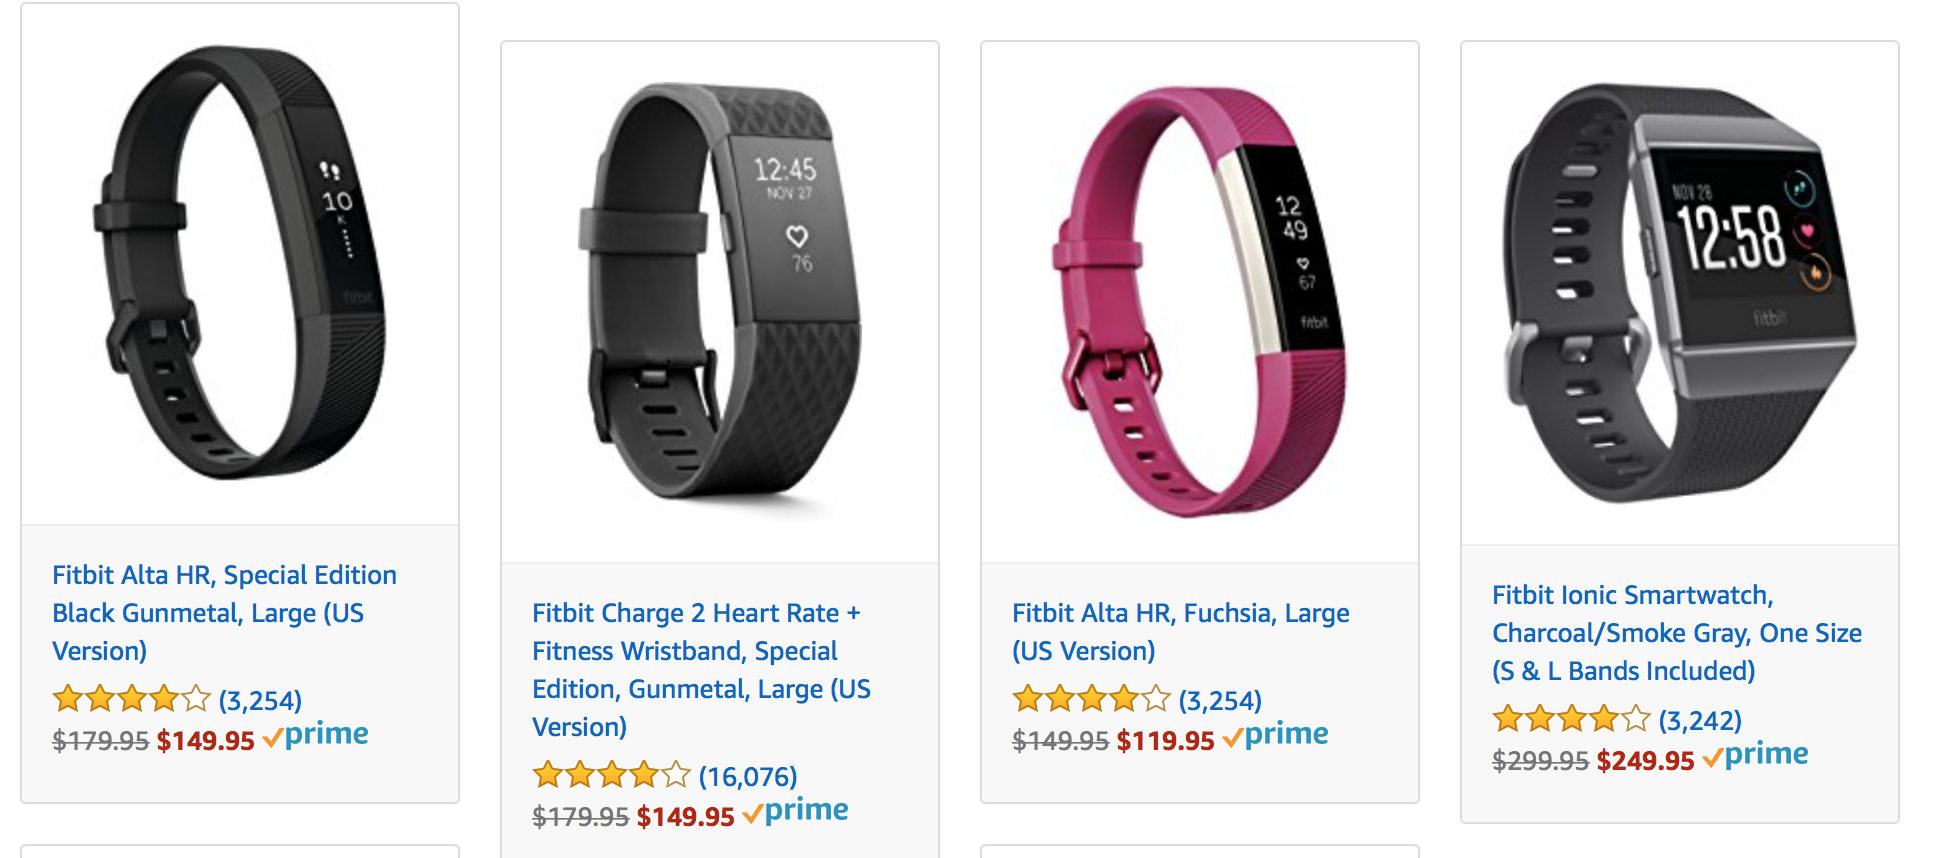 Amazon Offering Huge Discounts on Fitbit Products for